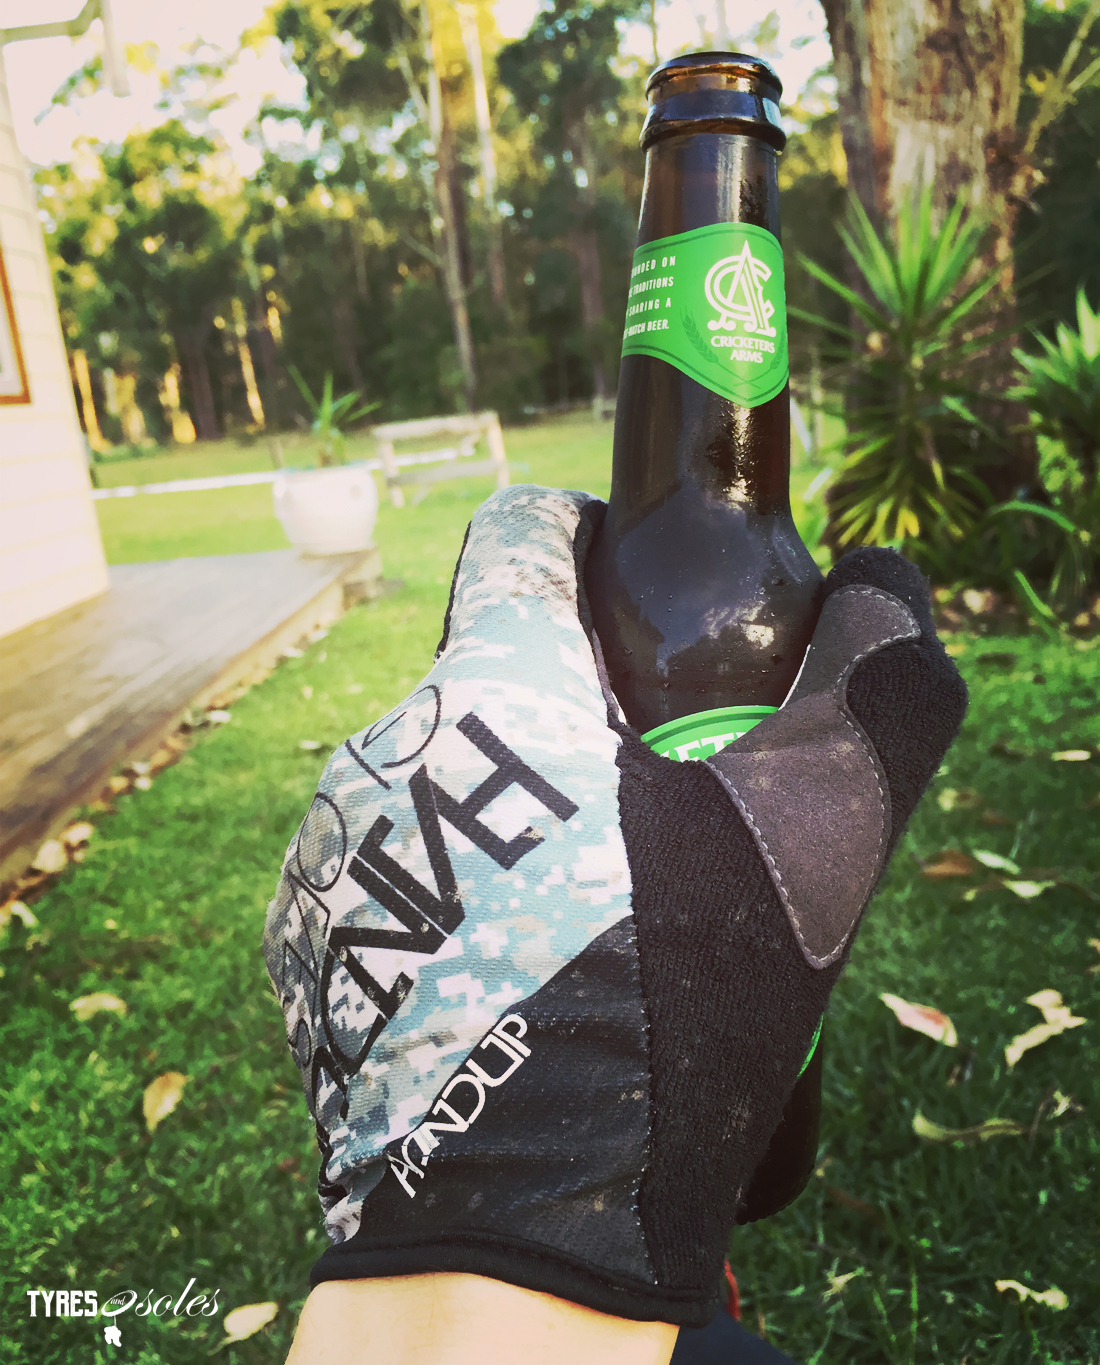 HANDUP GLOVES For grabbin' beers!! Pic: ©Jason Lorch